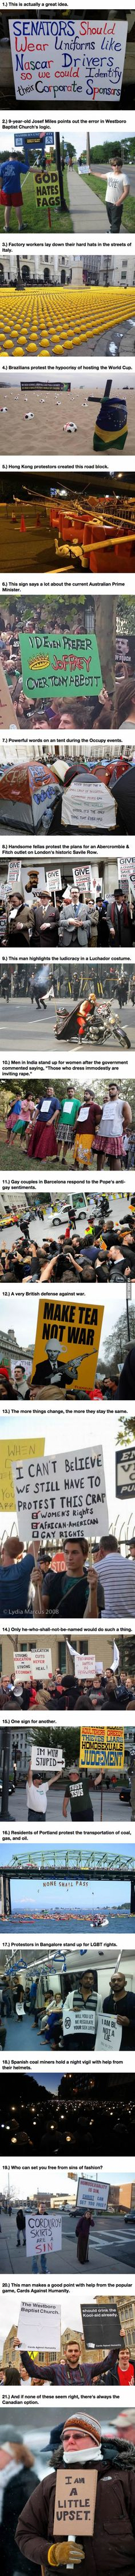 21 Peaceful Protestors Who Used Their Brains To Make Their Case, Not Brawn.